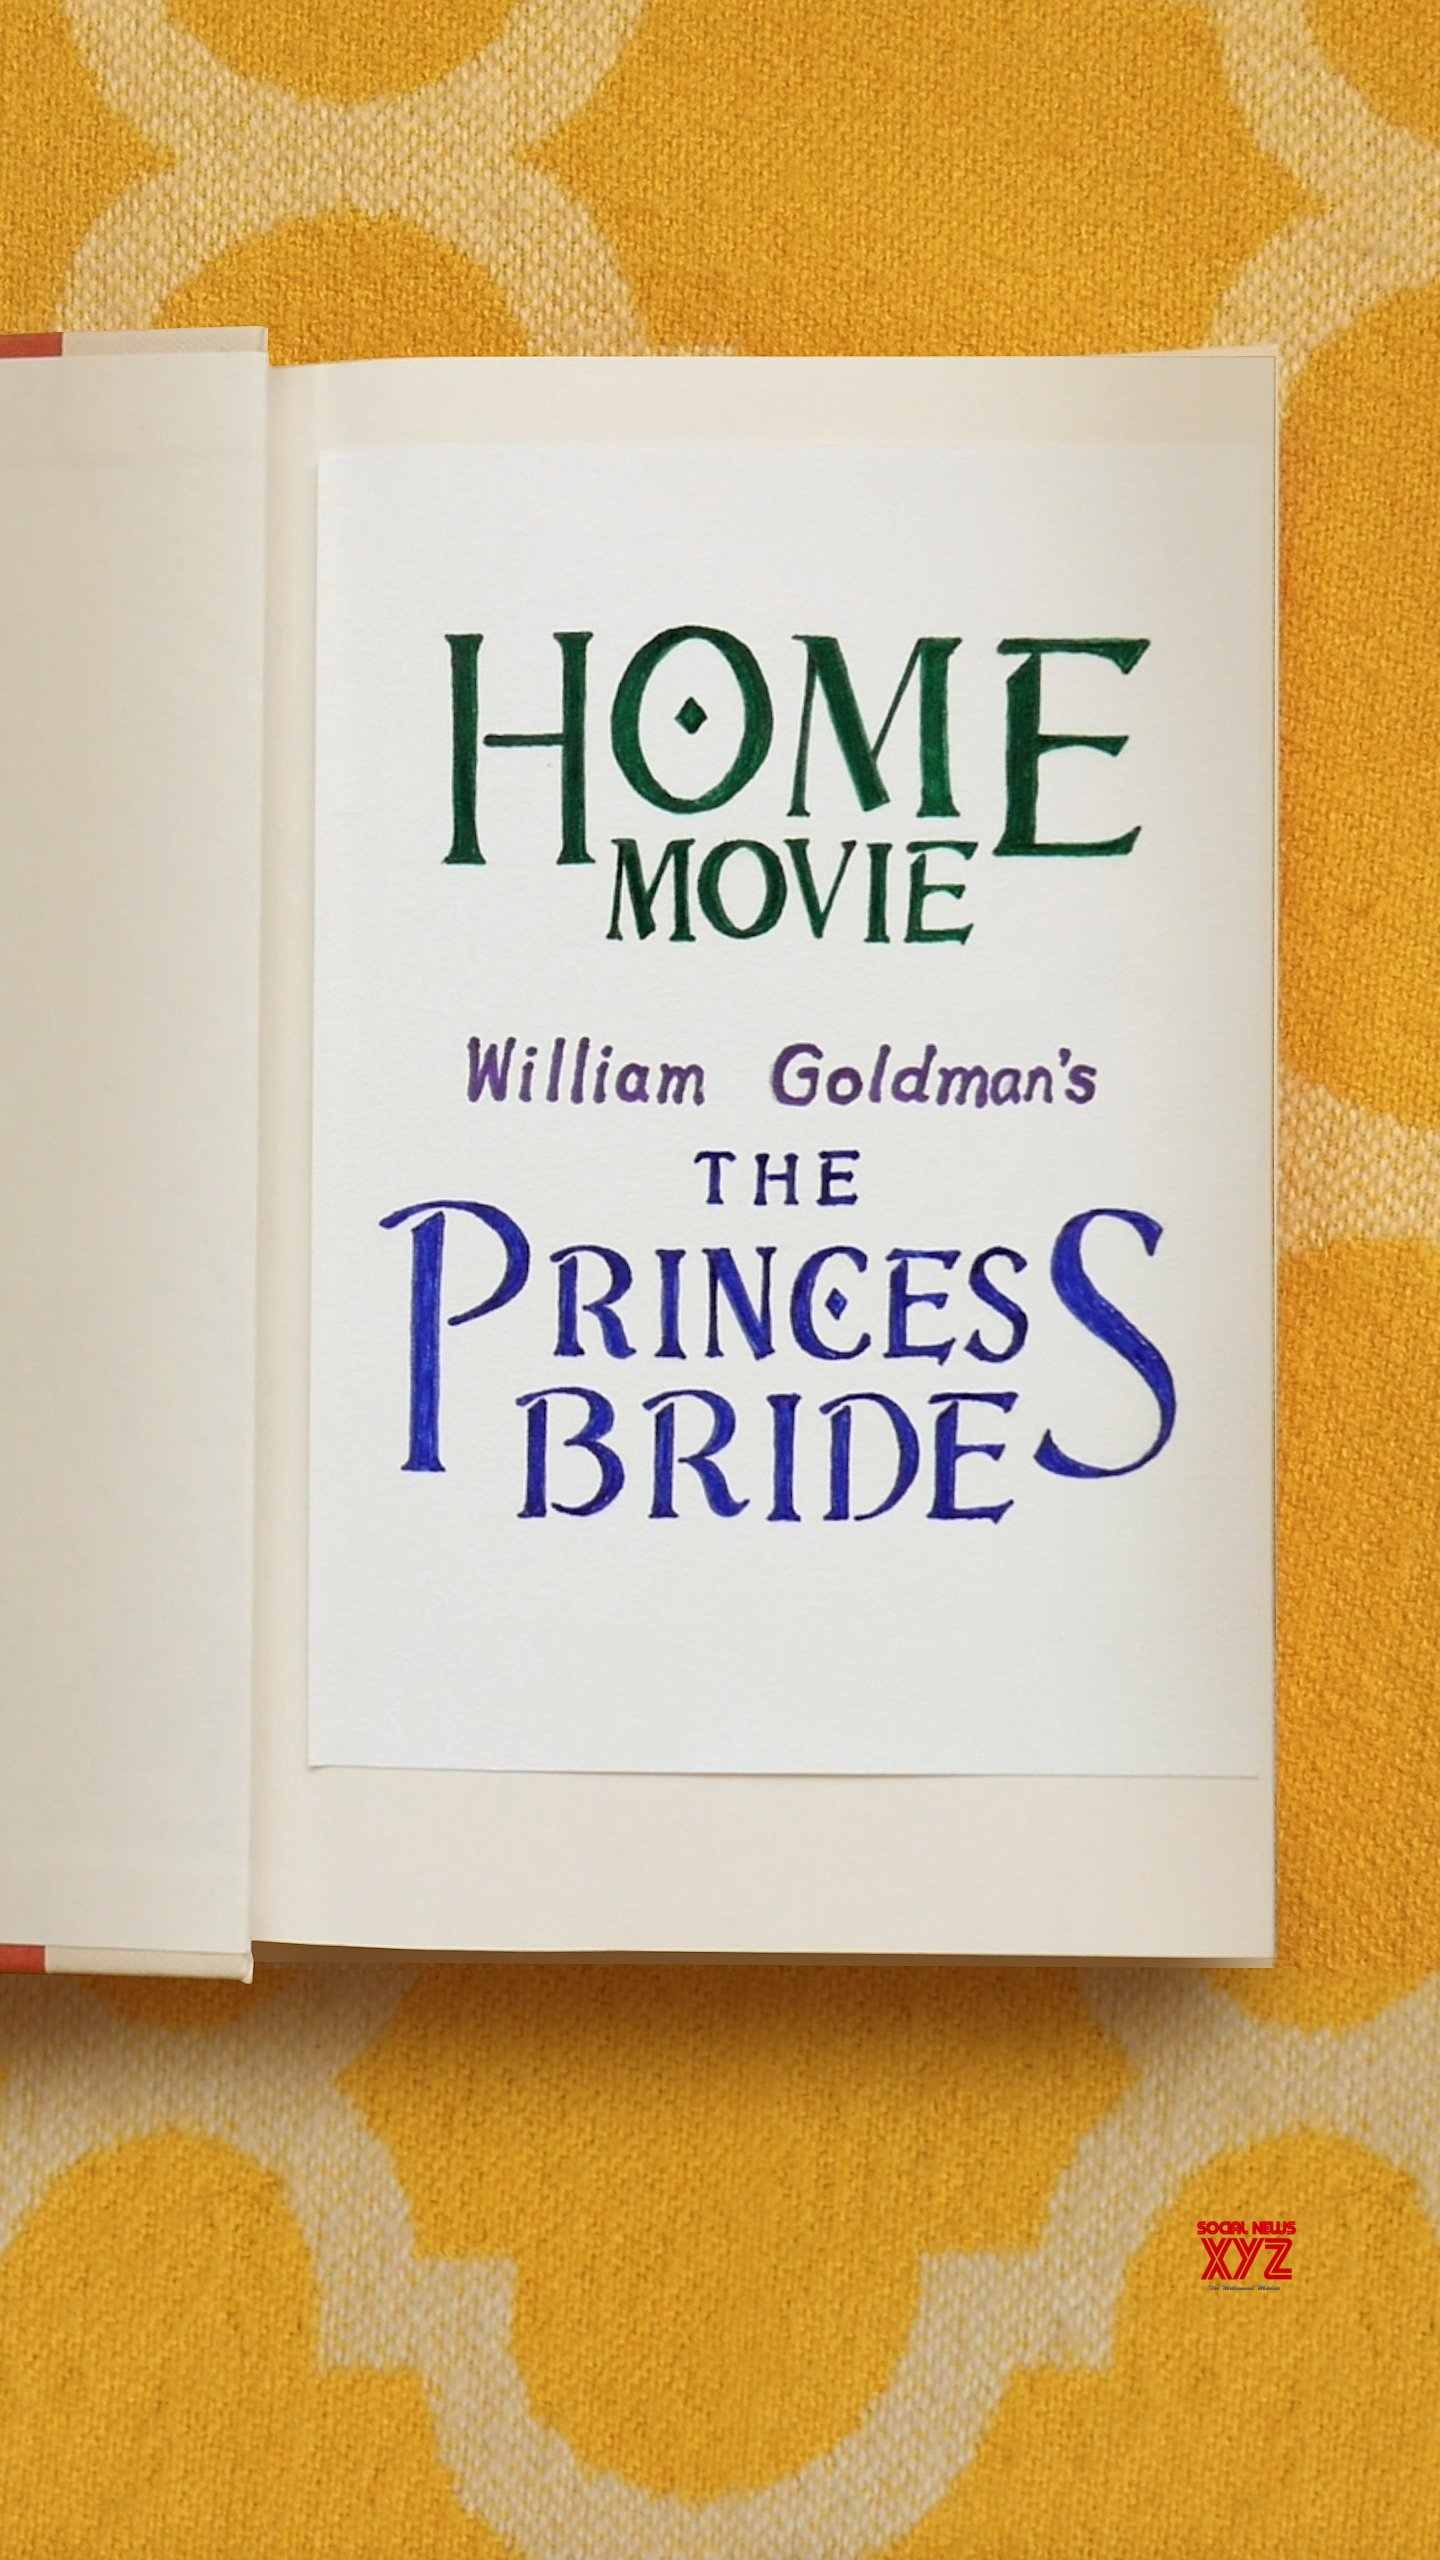 Home Movie The Princess Bride Movie Hd Poster And Stills Social News Xyz